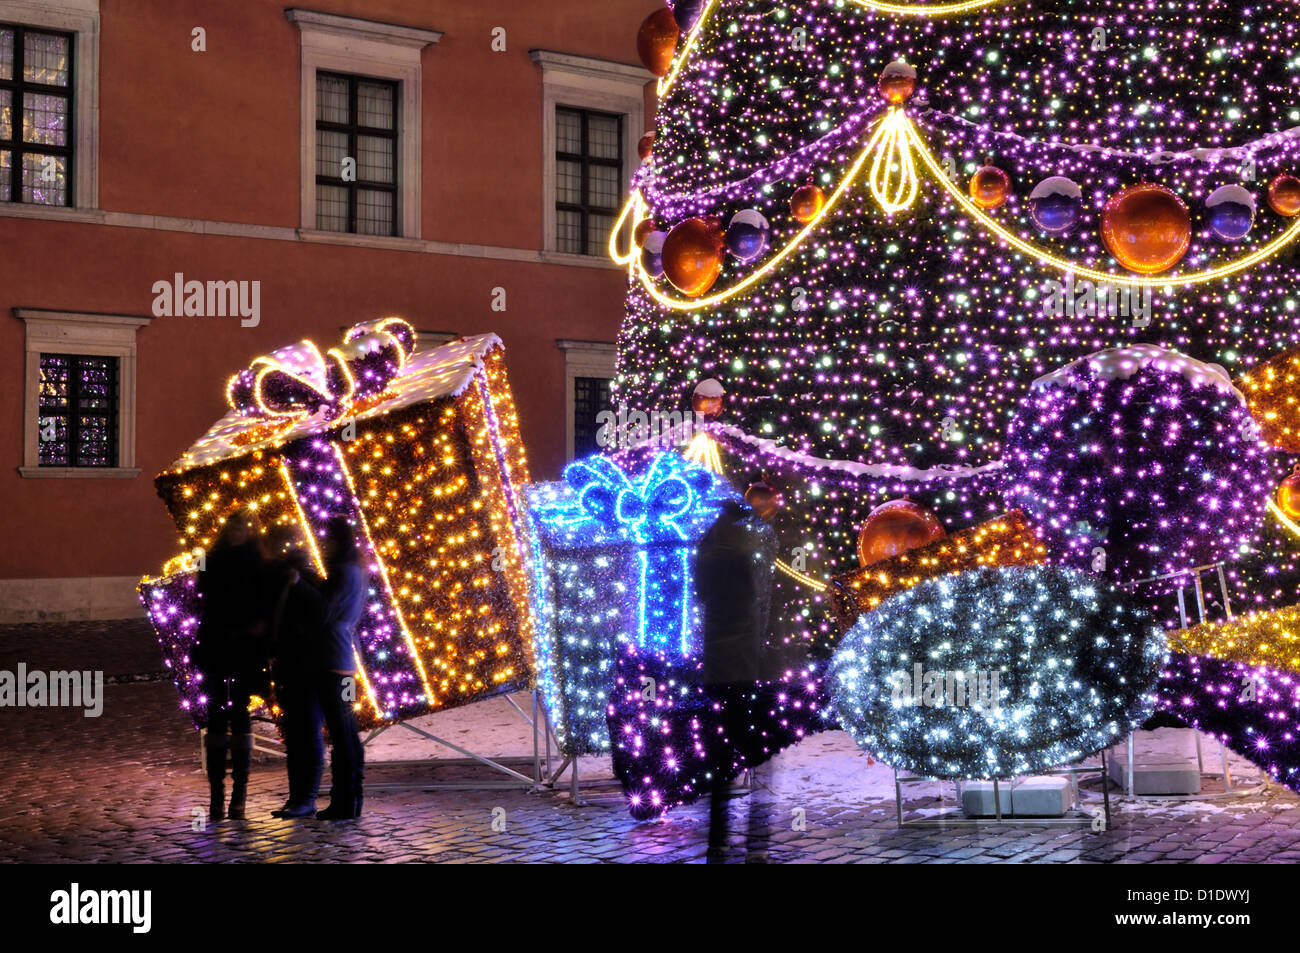 Christmas decorations in Warsaw - Stock Image